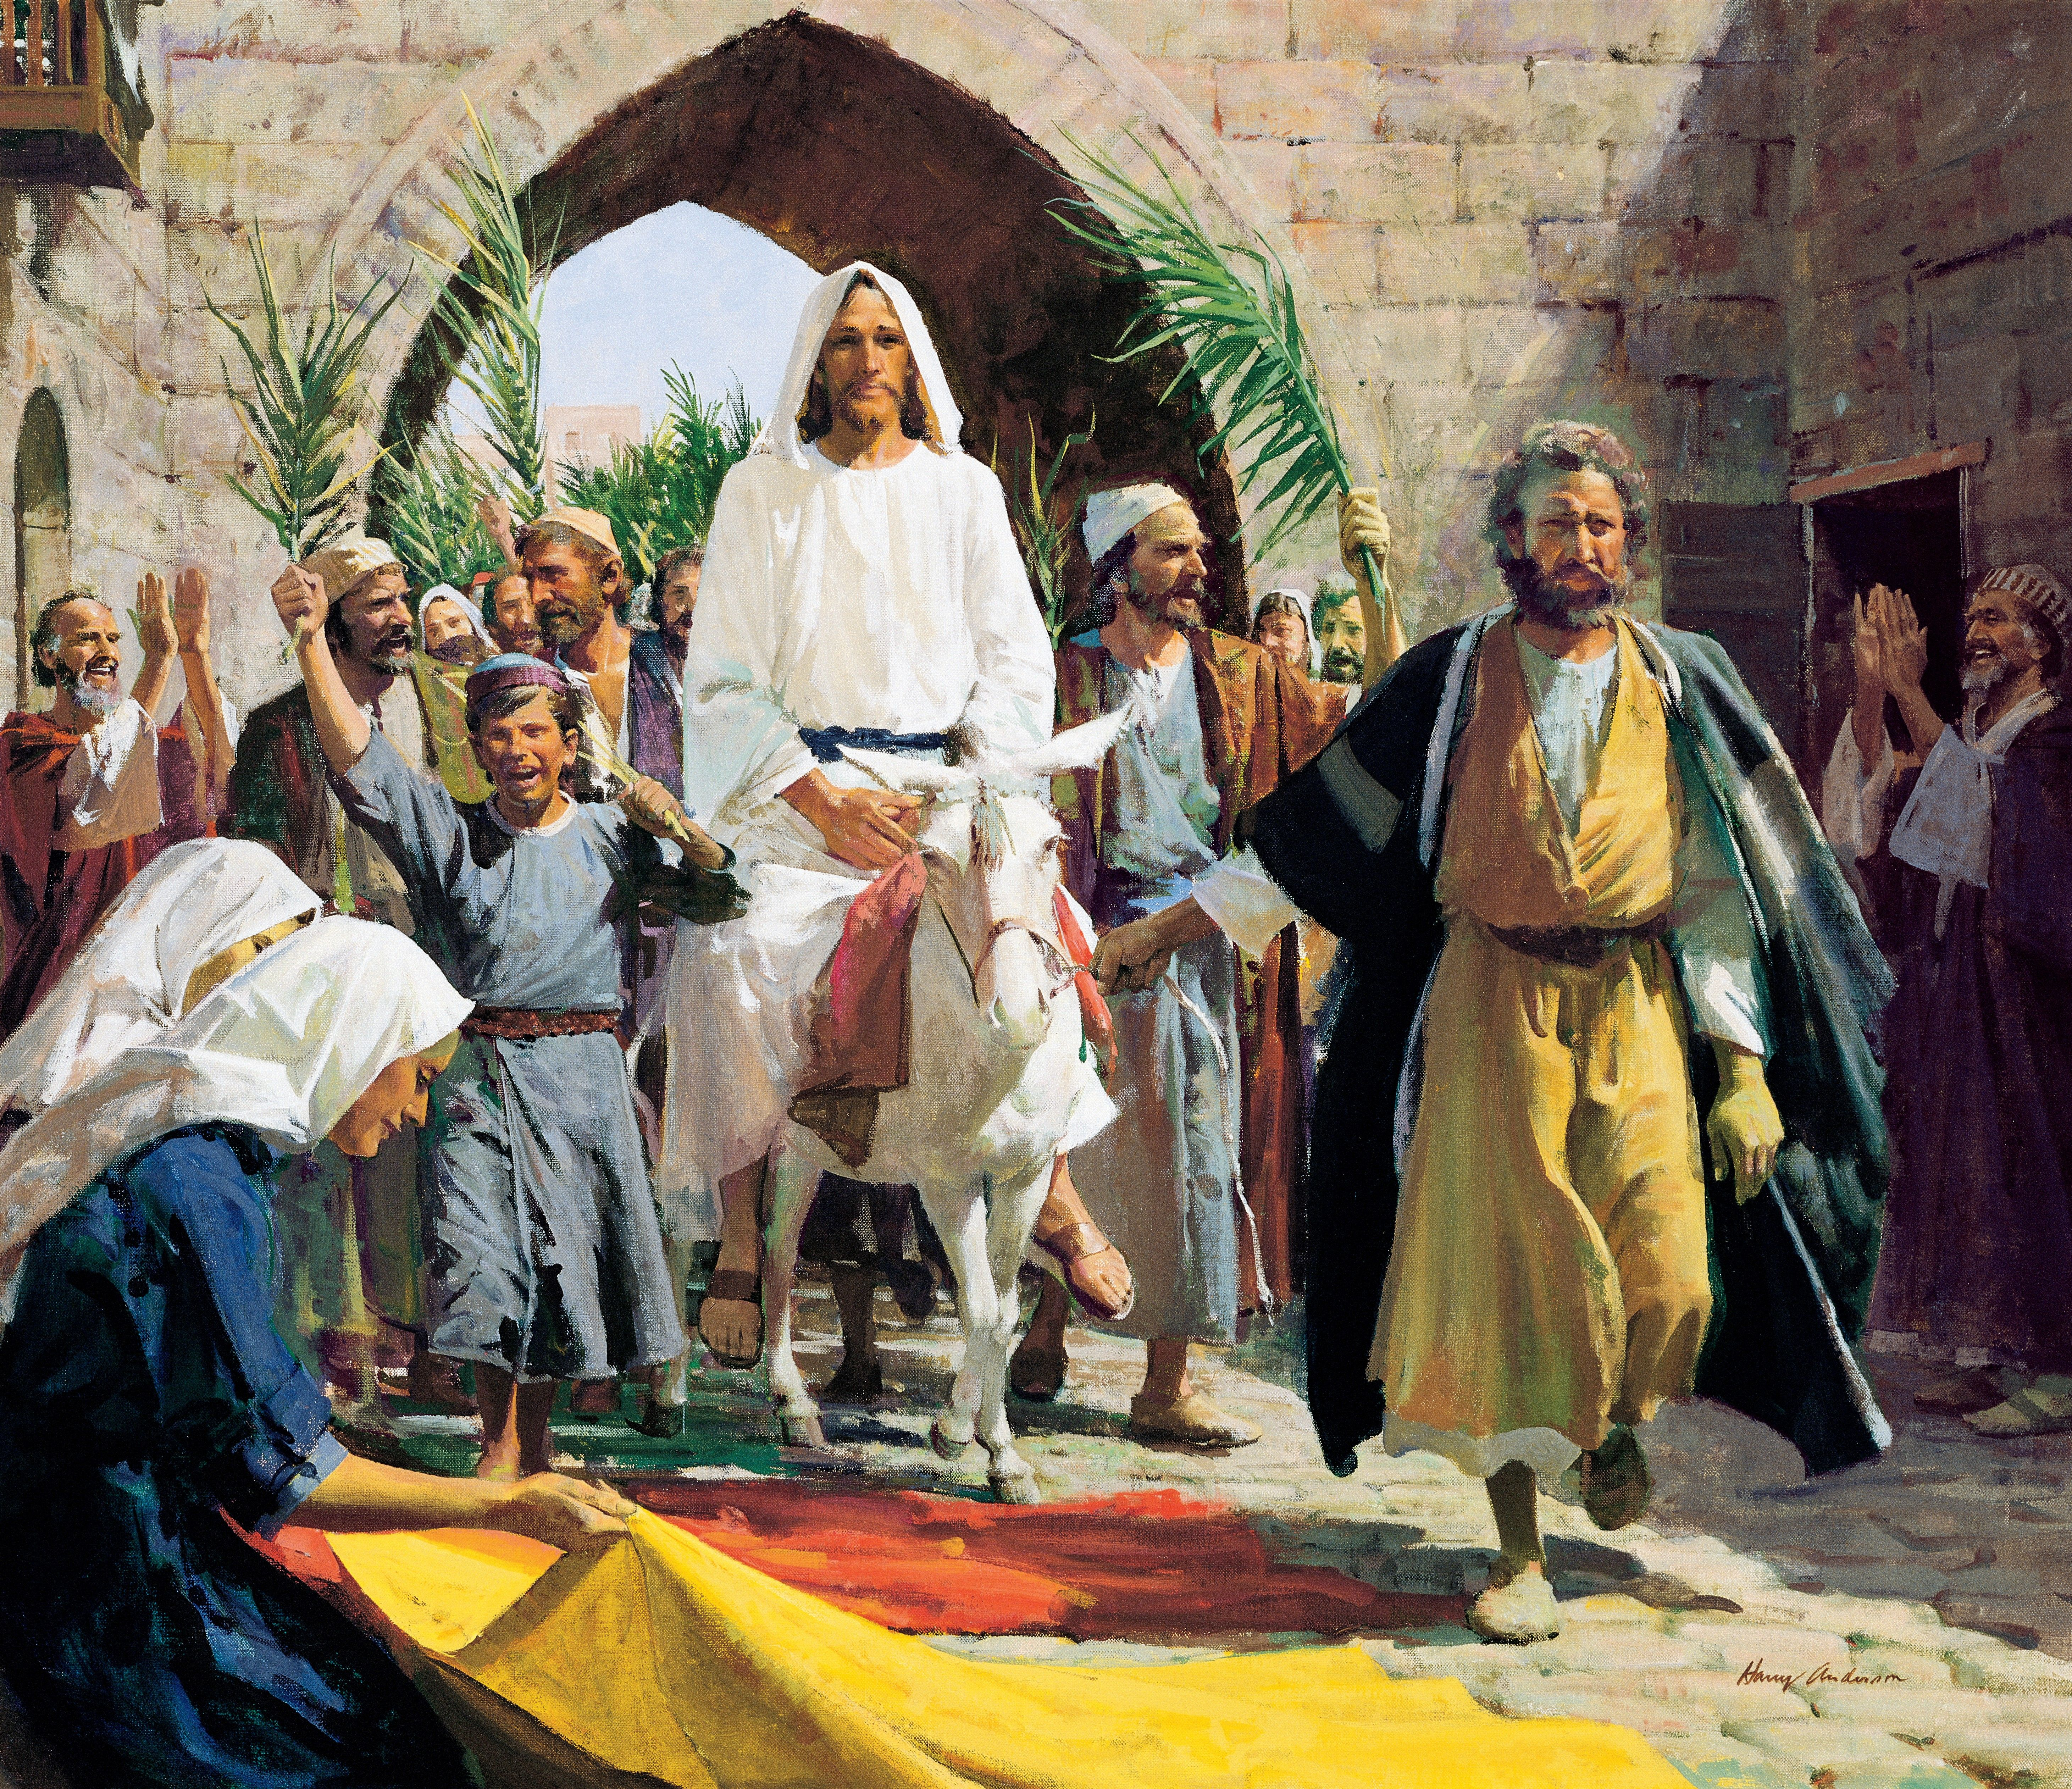 Triumphal Entry (Christ's Triumphal Entry into Jerusalem), by Harry Anderson (62173); GAK 223; GAB 50; Primary manual 7-28; Zechariah 9:9; Matthew 21:1–11; Mark 11:1–11; Luke 19:29–38